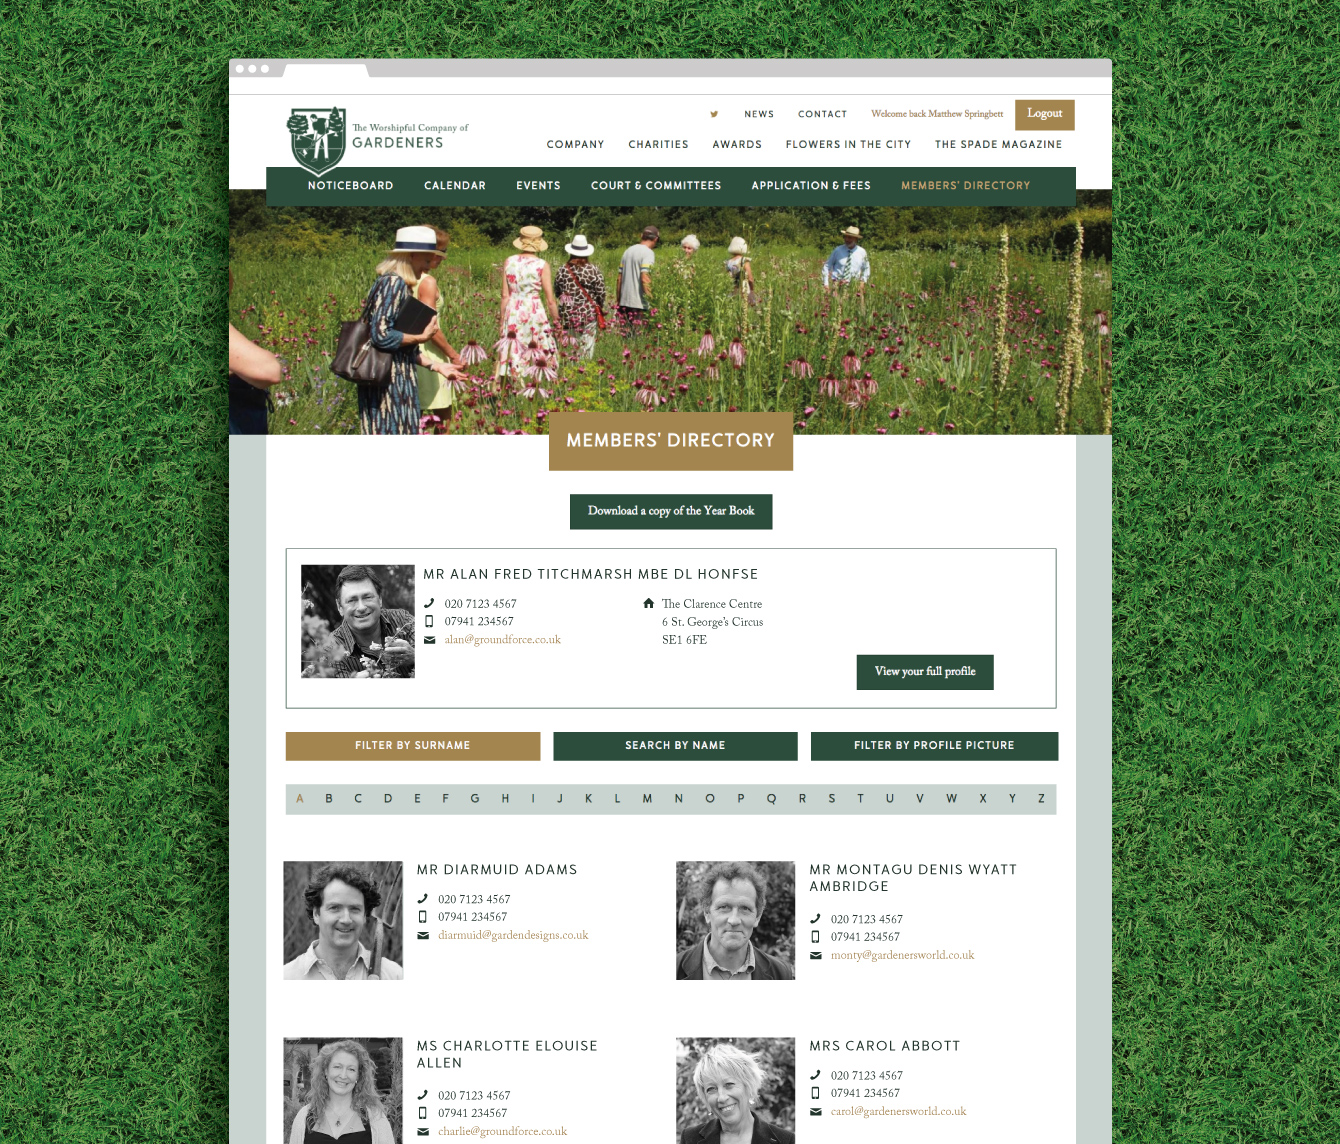 The members directory on the Gardeners website - desktop